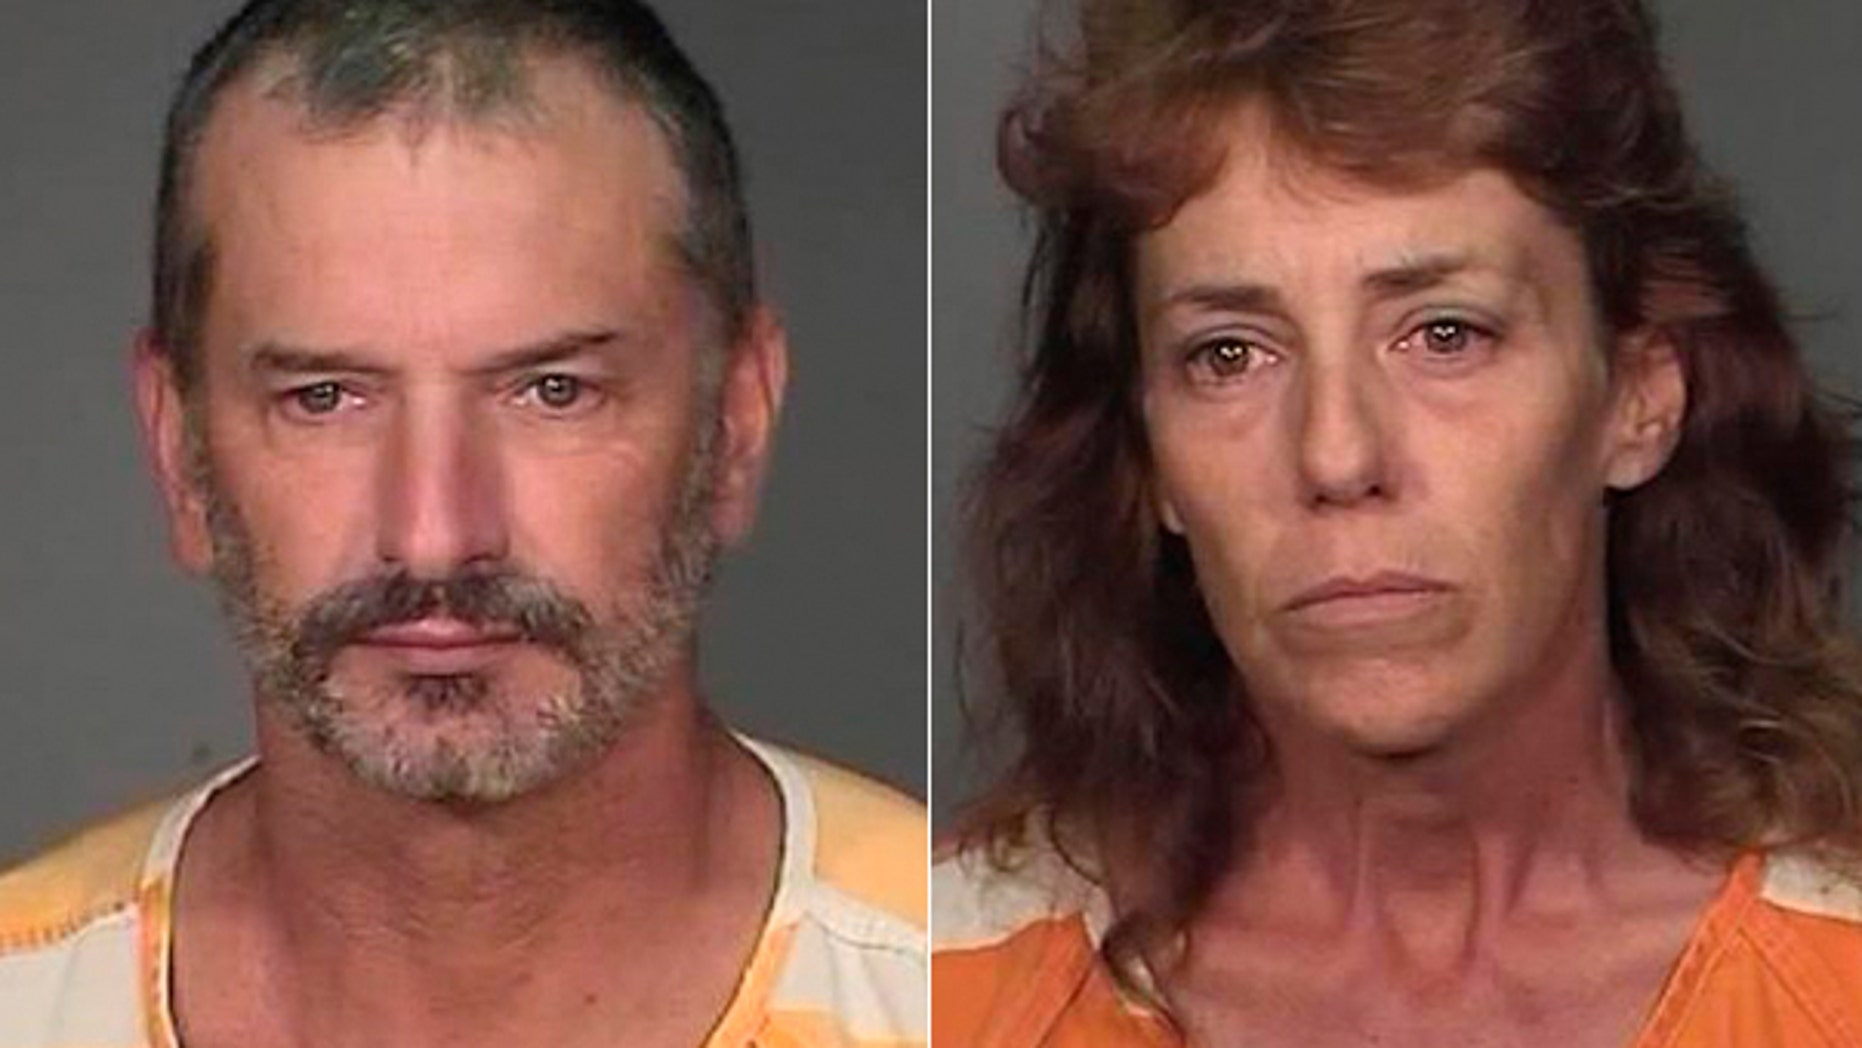 Aug. 19: These images provided by the Mohave County Sheriff's Office shows the booking photos of John McCluskey and Cassyln Welch after they were captured by authorities in Arizona, ending a national manhunt.